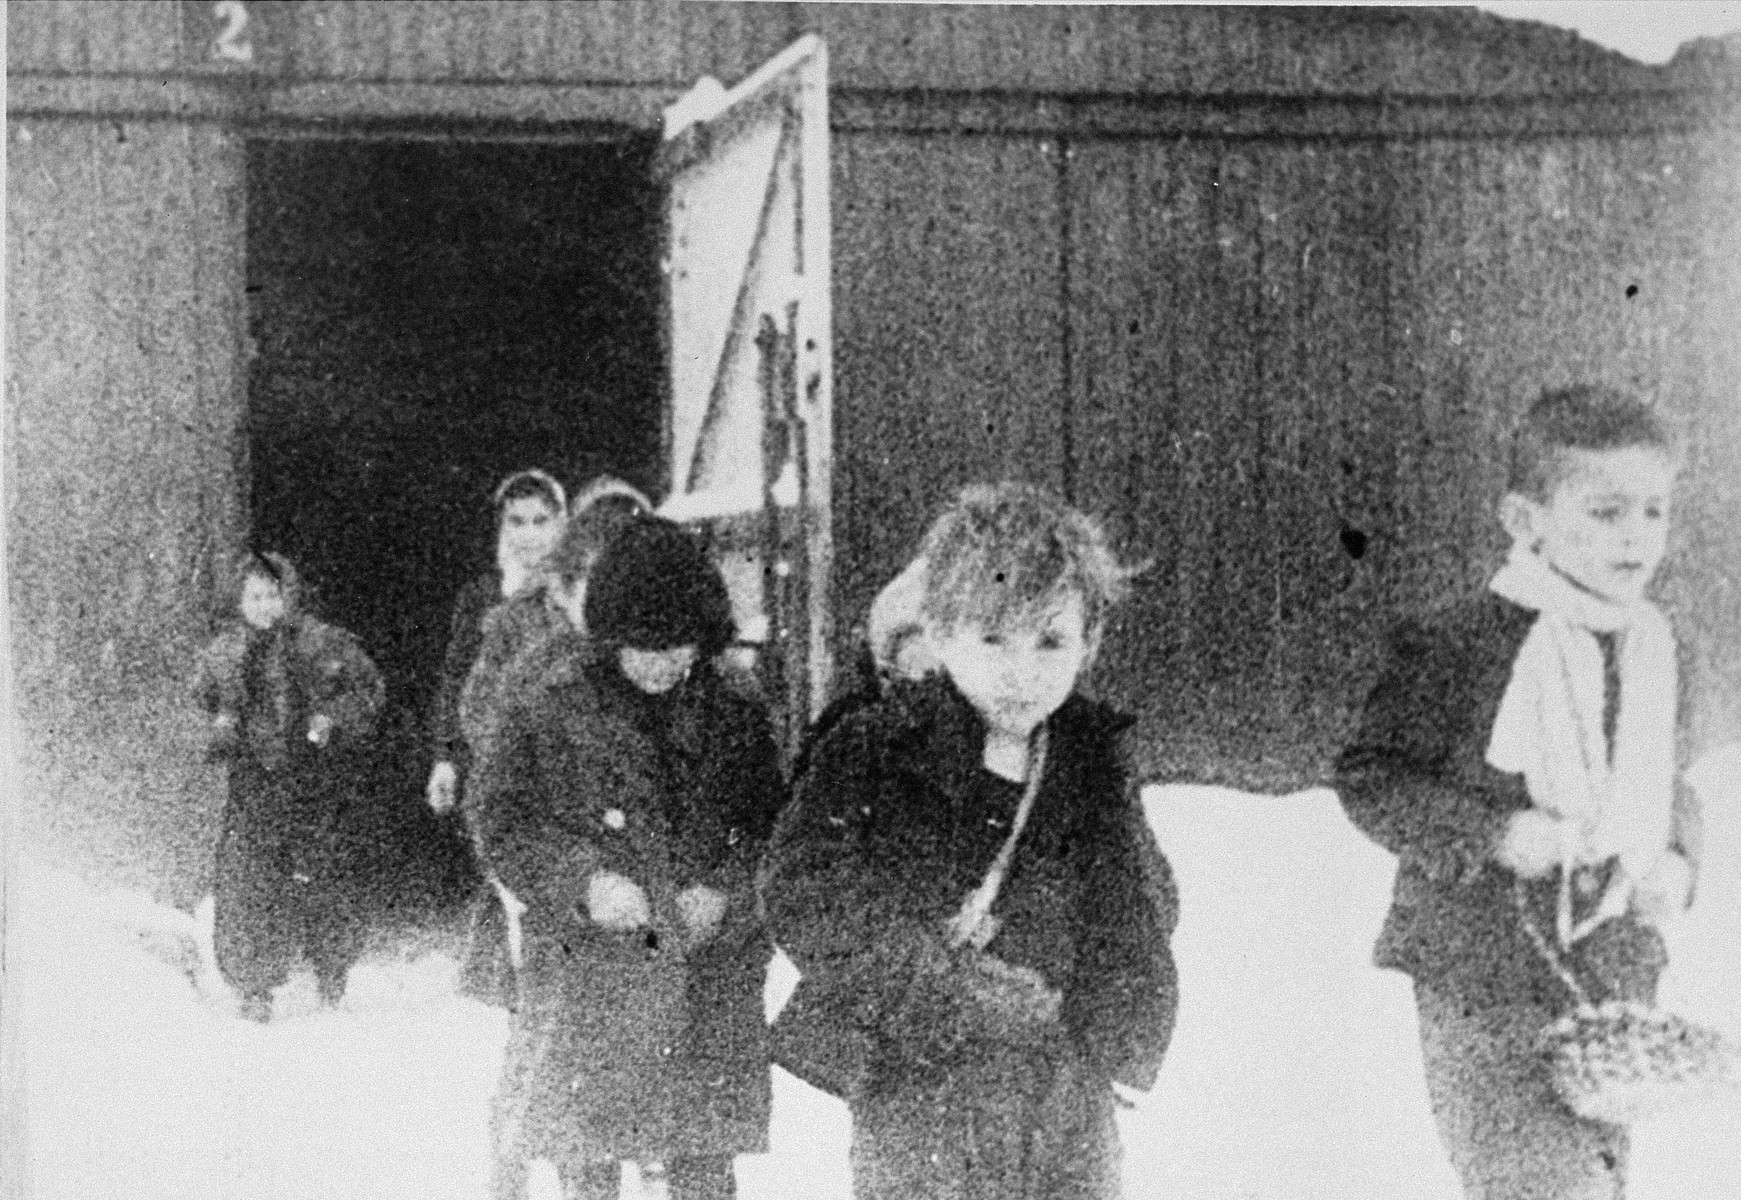 Child survivors walk out of the children's barracks in Auschwitz.  STILL PHOTOGRAPH FROM THE SOVIET FILM of the liberation of Auschwitz, taken by the film unit of the First Ukrainian Front.